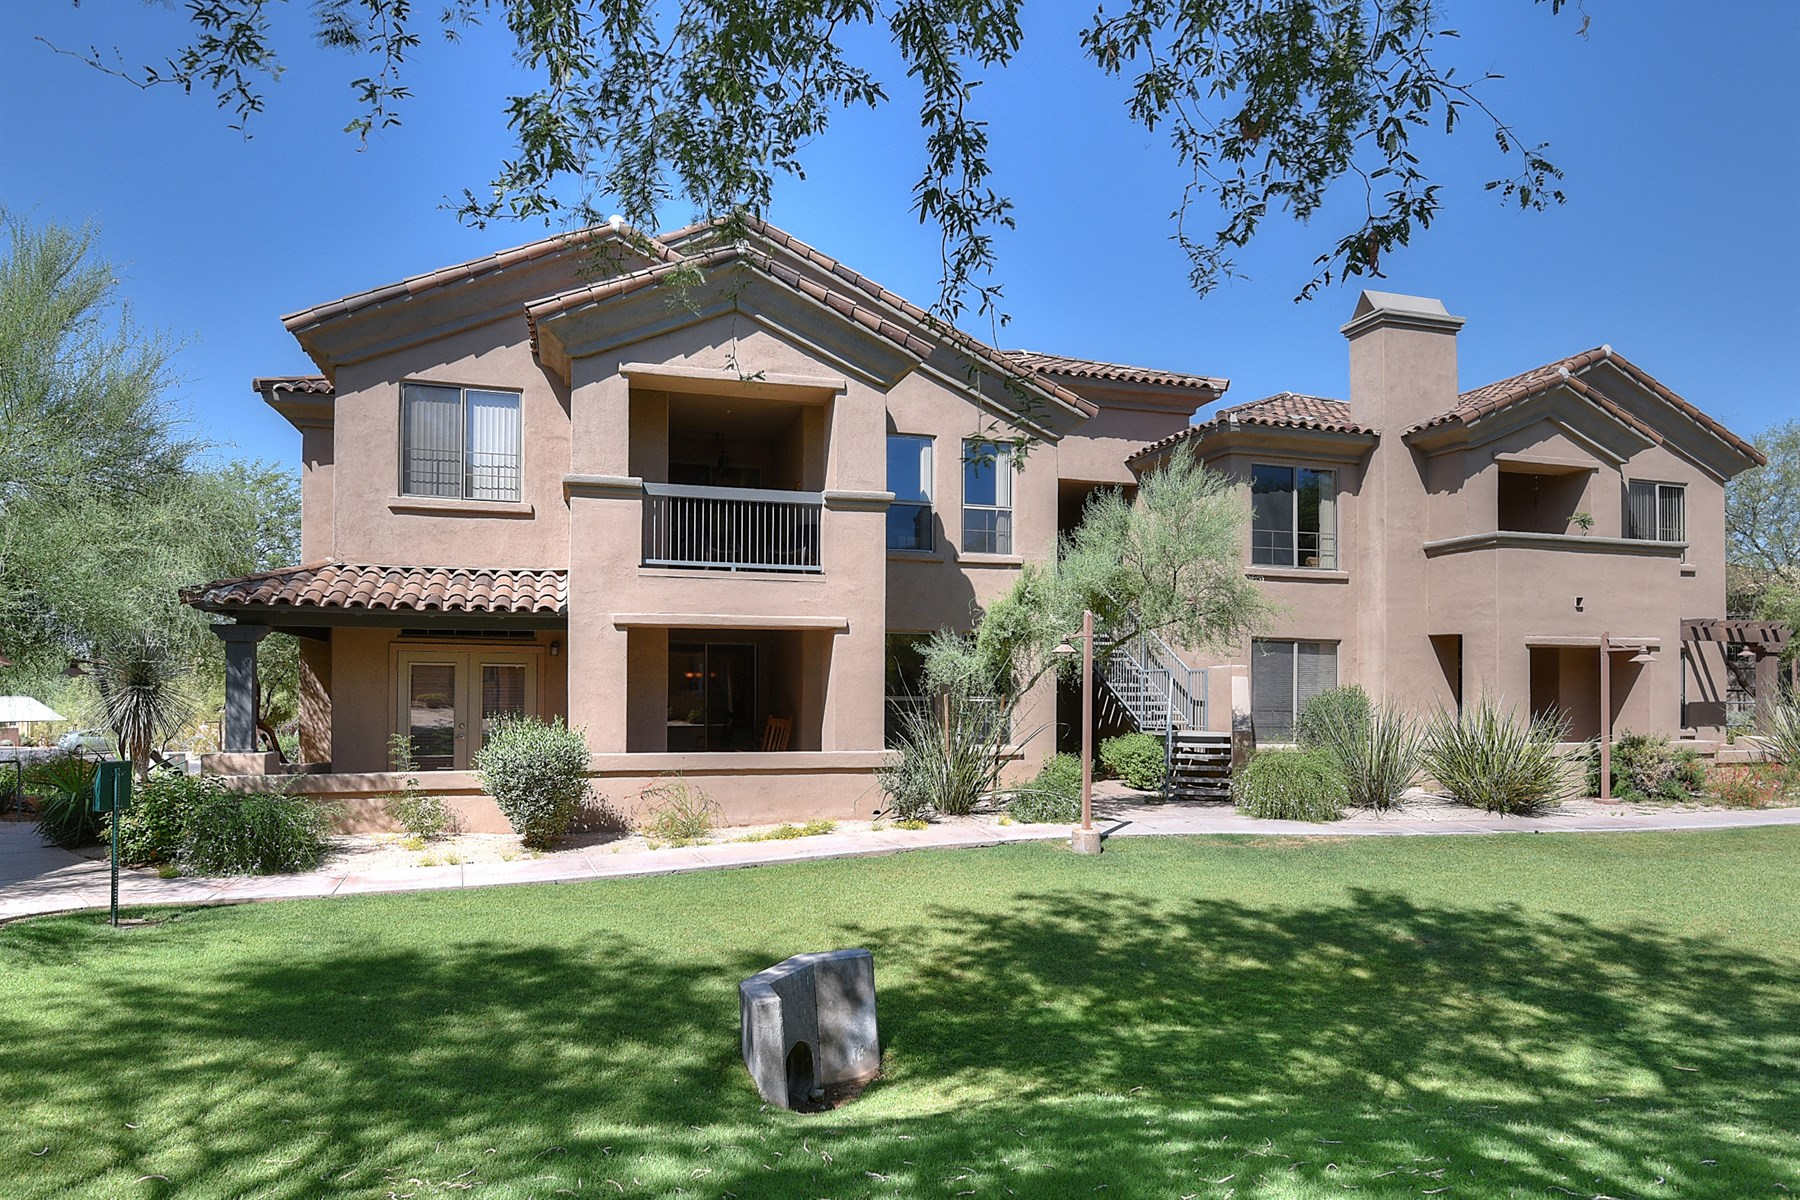 Maison unifamiliale pour l Vente à Great ground floor condo in The Villages at DC Ranch. 20801 N 90TH PL 129 Scottsdale, Arizona 85255 États-Unis